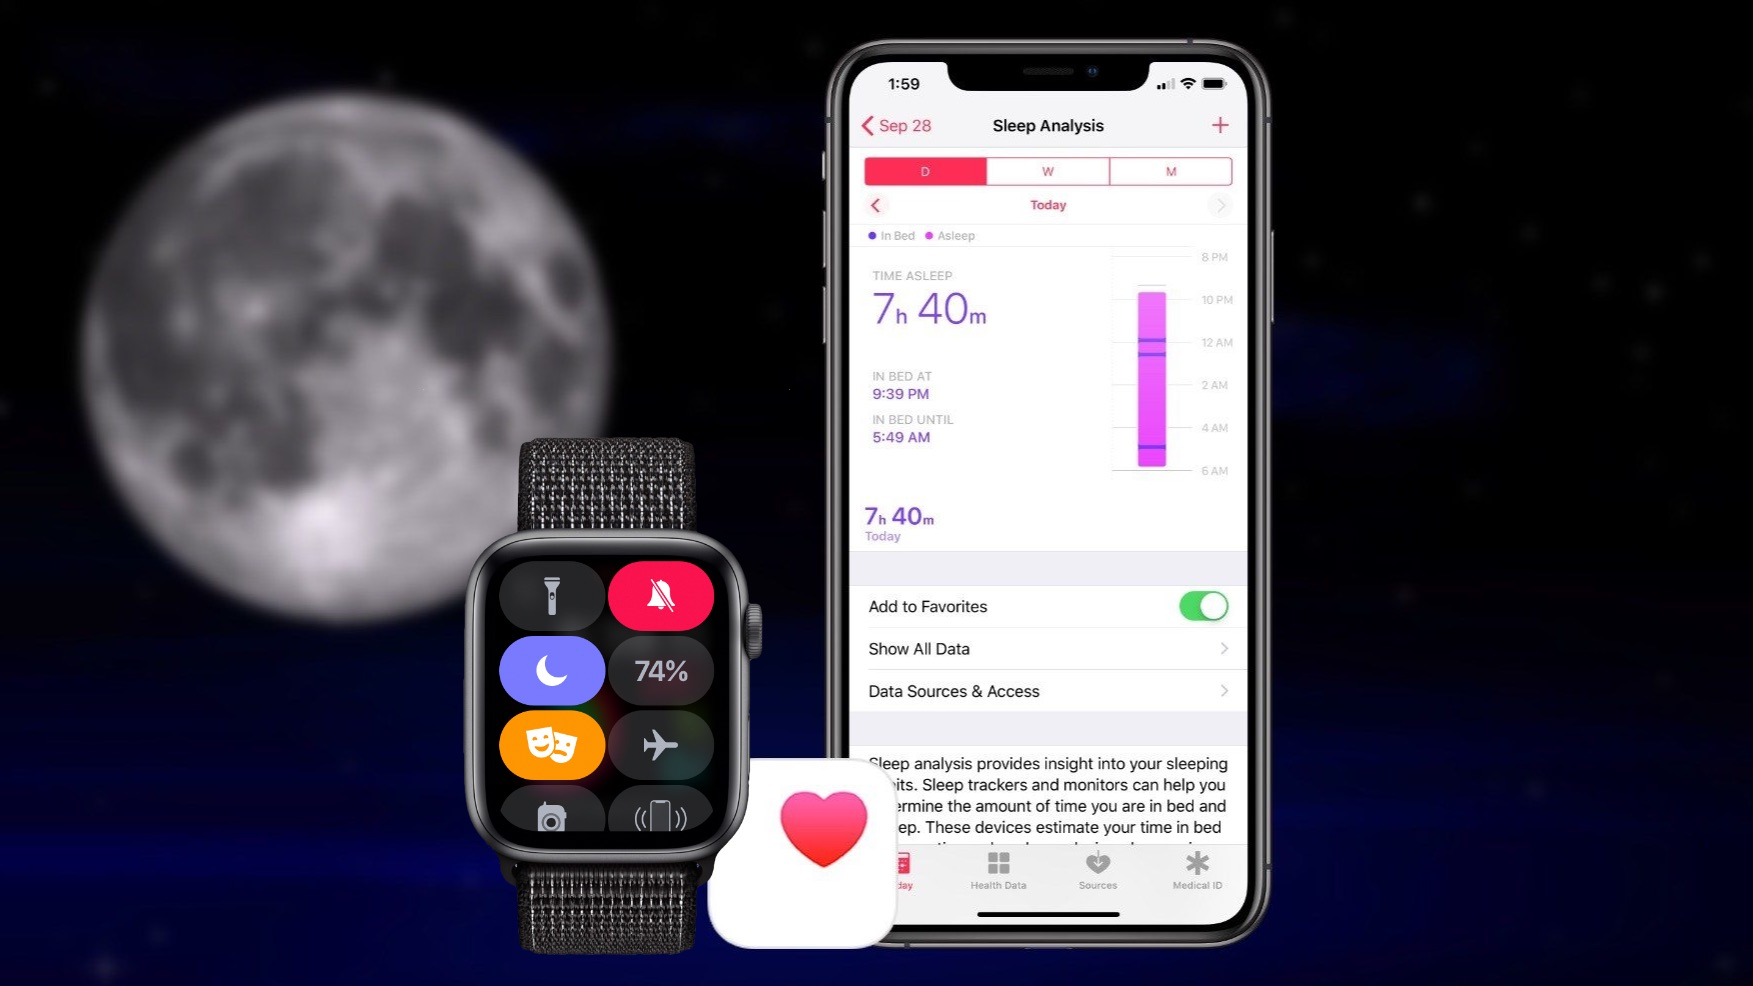 watchOS 6 wish list